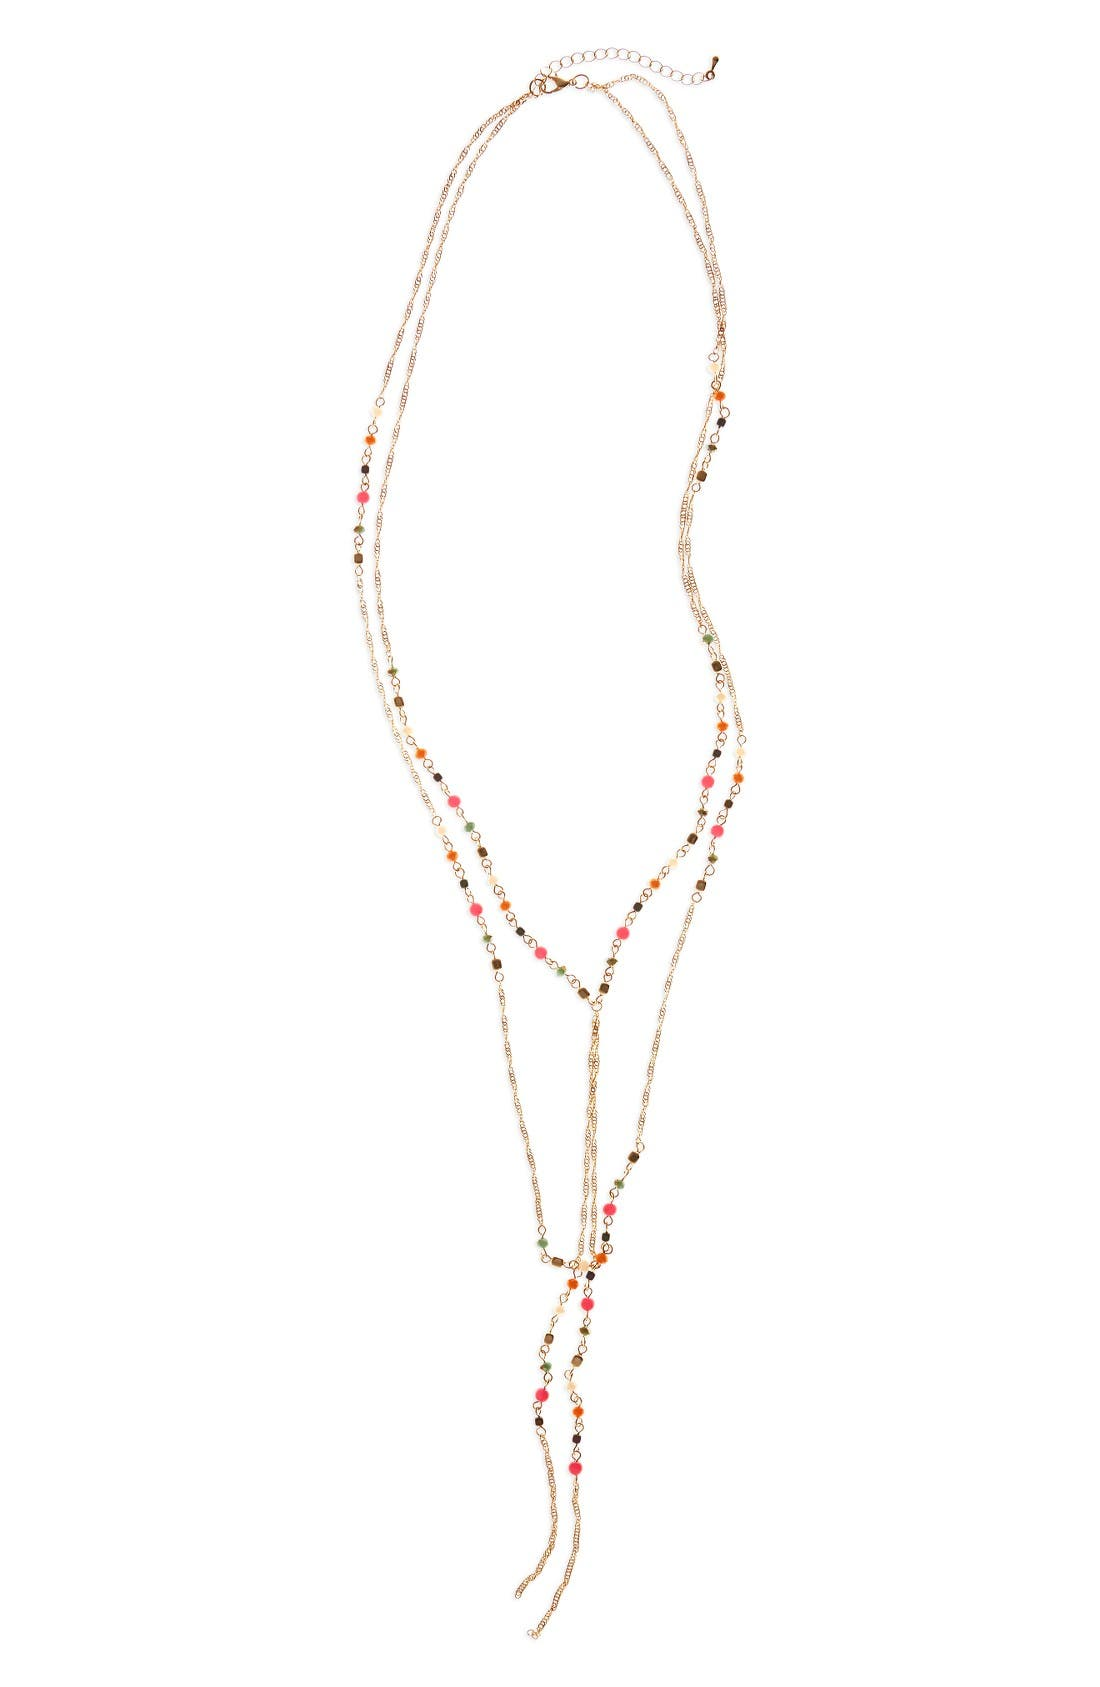 Alternate Image 1 Selected - Panacea Multistrand Y-Necklace